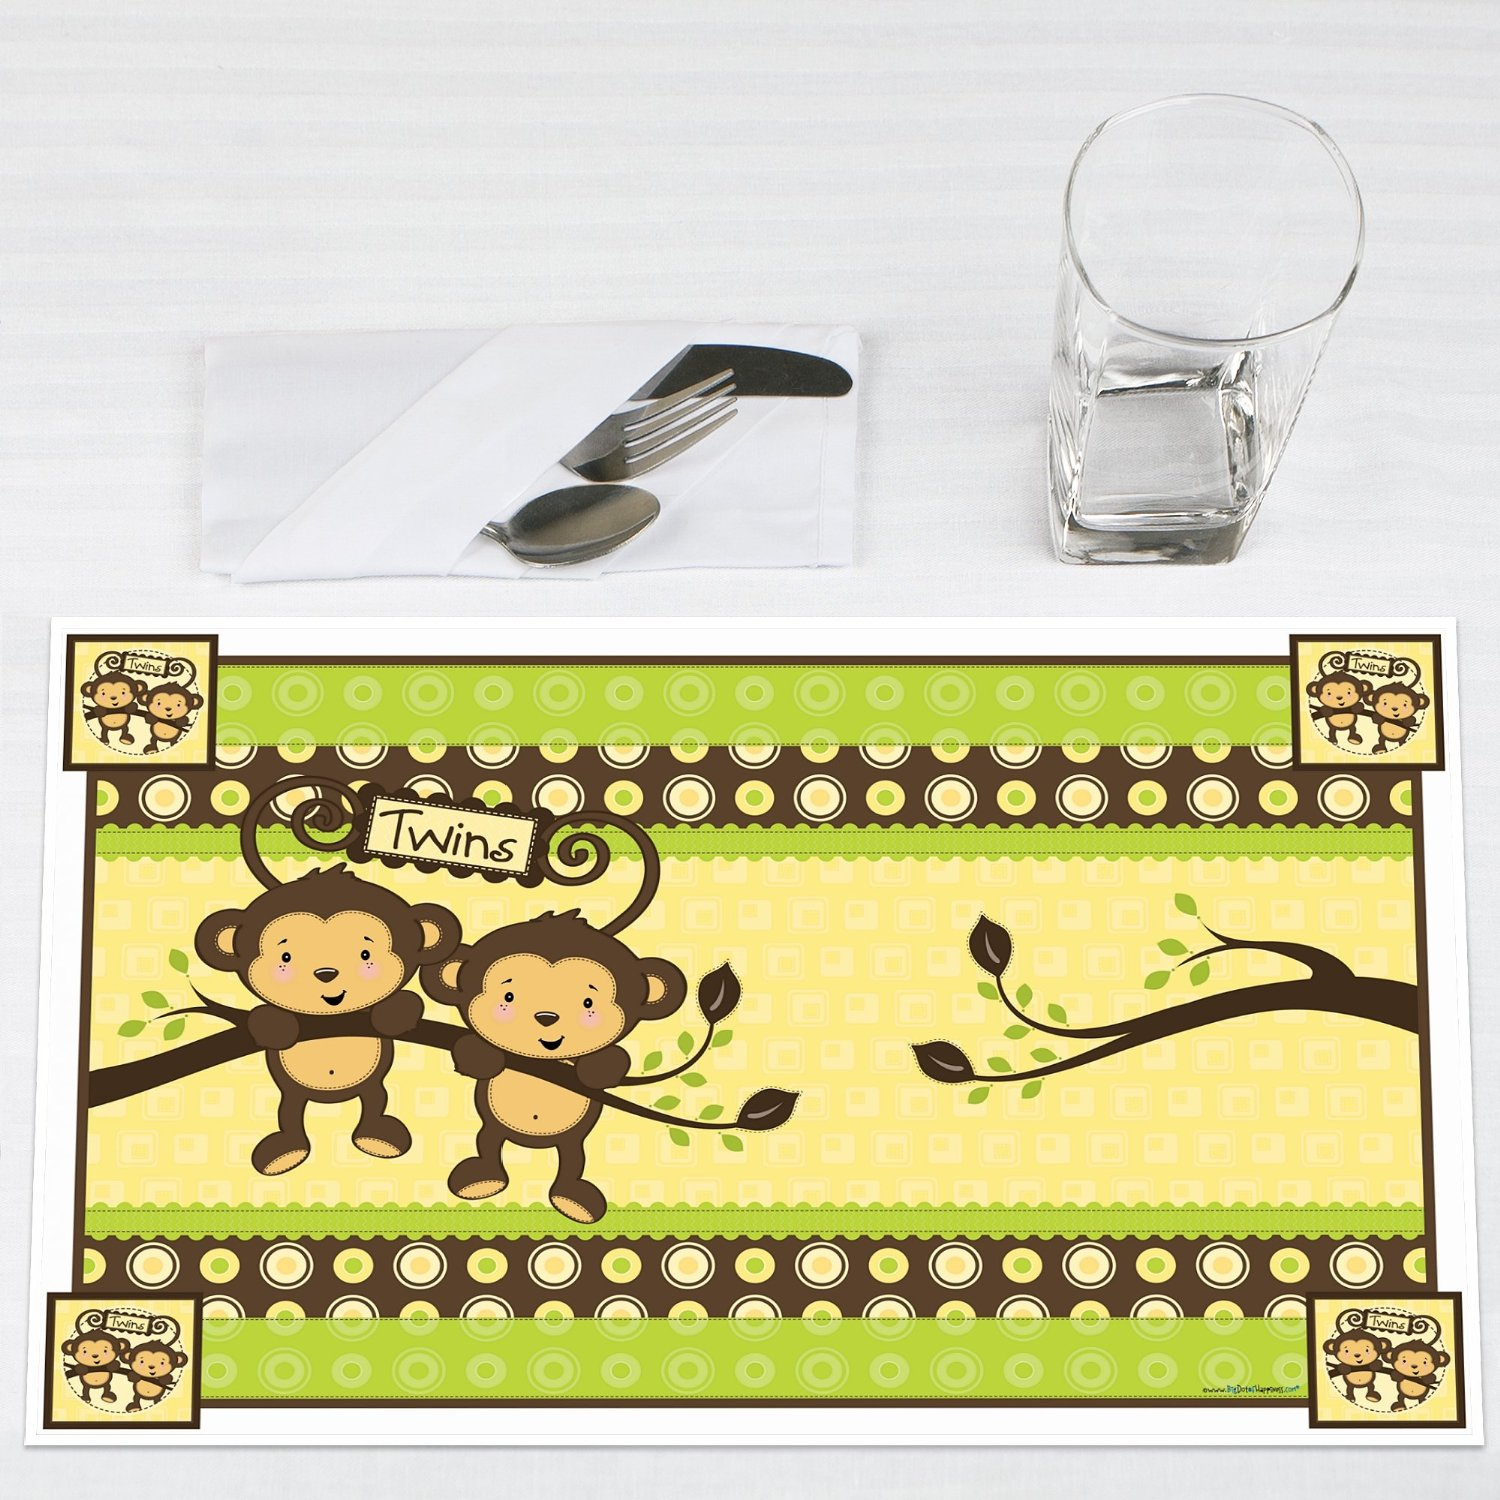 Twins Monkey Neutral Party Placemats Set of 12 by Big Dot of Happiness, LLC